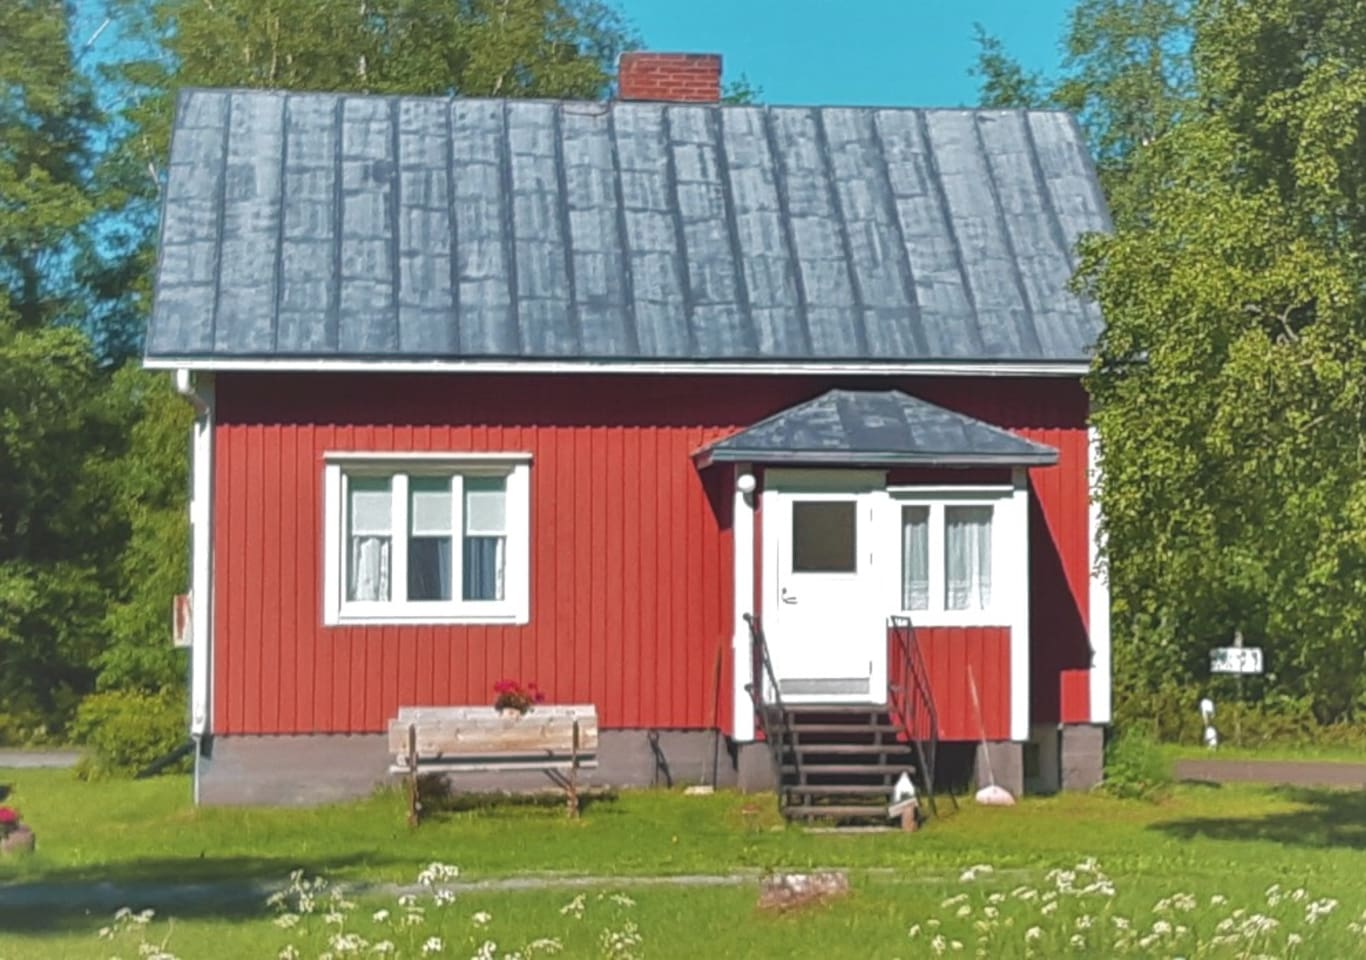 The Fisherman's house is in the outskirts of Molpe. The house is close to the finnish nature, a calm and safe environment of green trees and bushes. The coast is only 2 km away. You can drive, walk, bike to the cozy sea restaurant or visit an island.